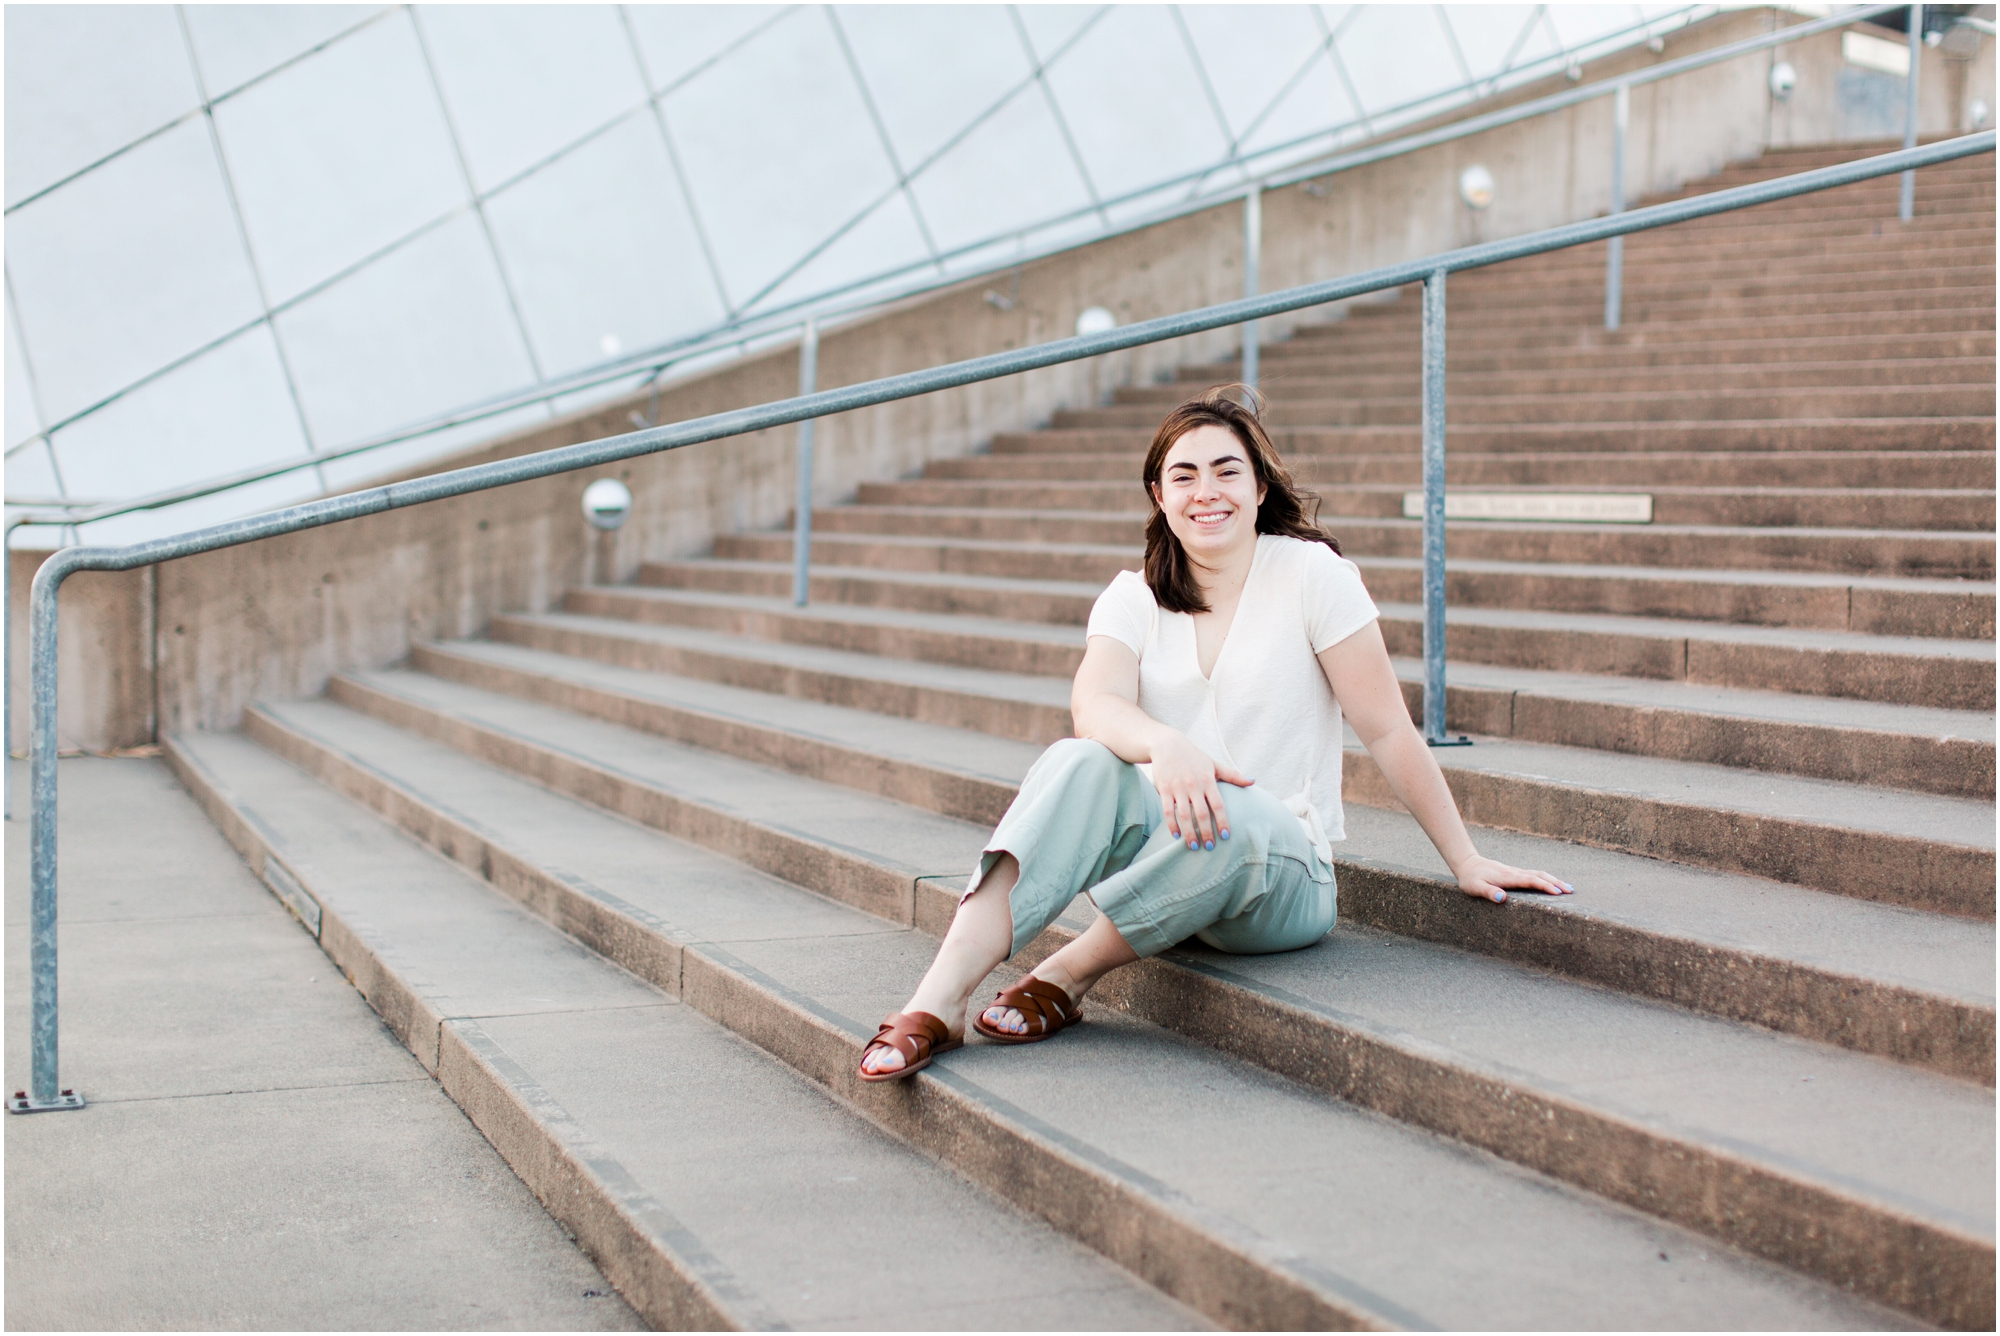 Senior portrait shoot at UW Tacoma campus and Bridge of Glass. Photos by Briana Calderon Photography based in the greater Seattle Area._1239.jpg